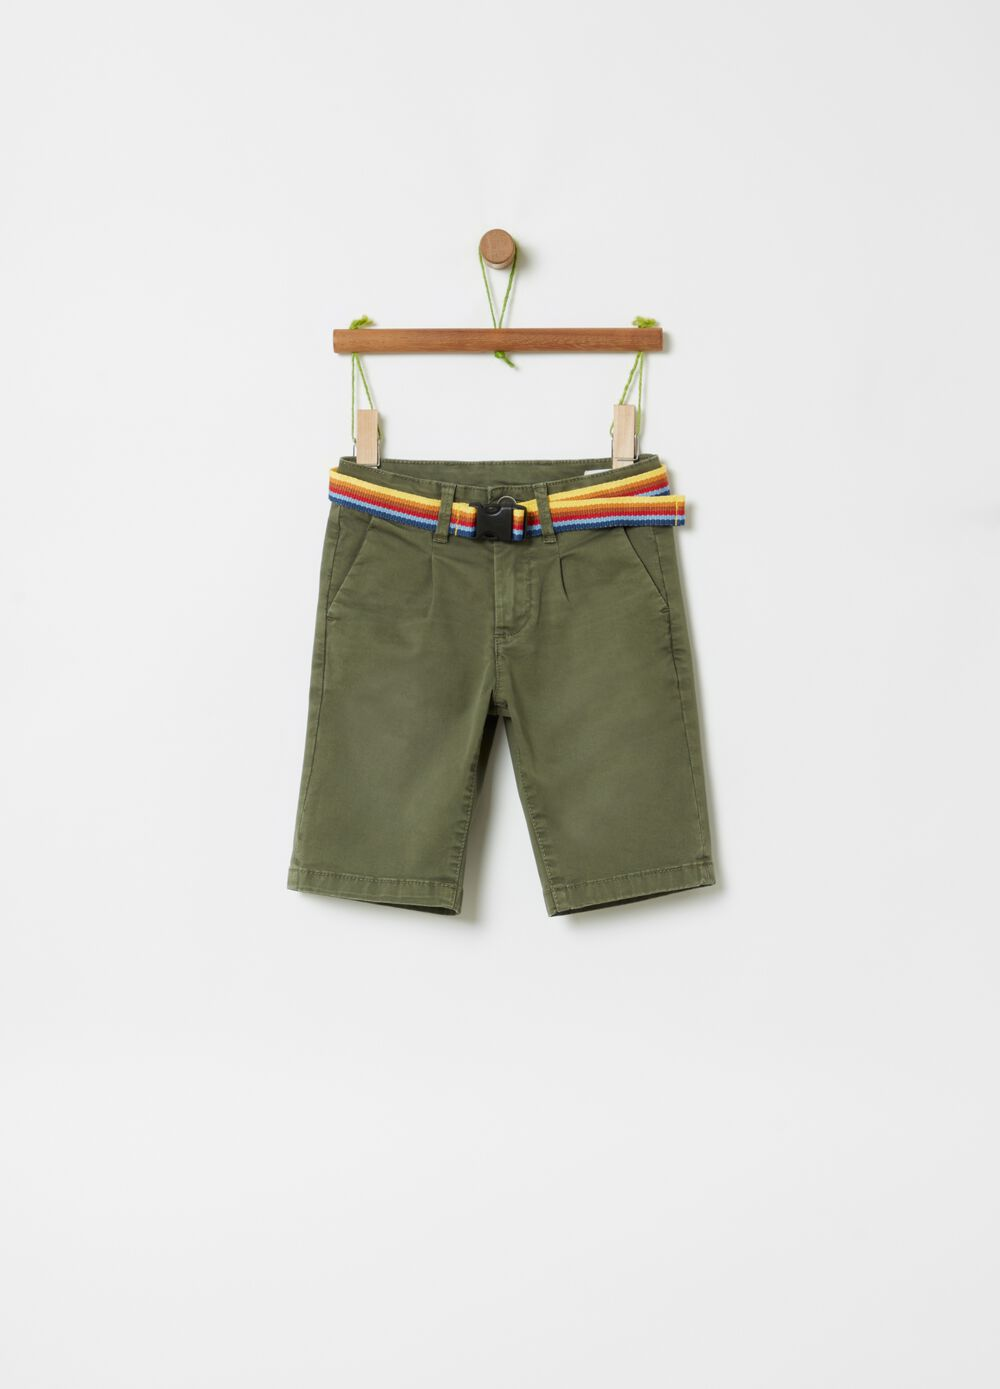 Bermuda shorts in 100% organic cotton with belt